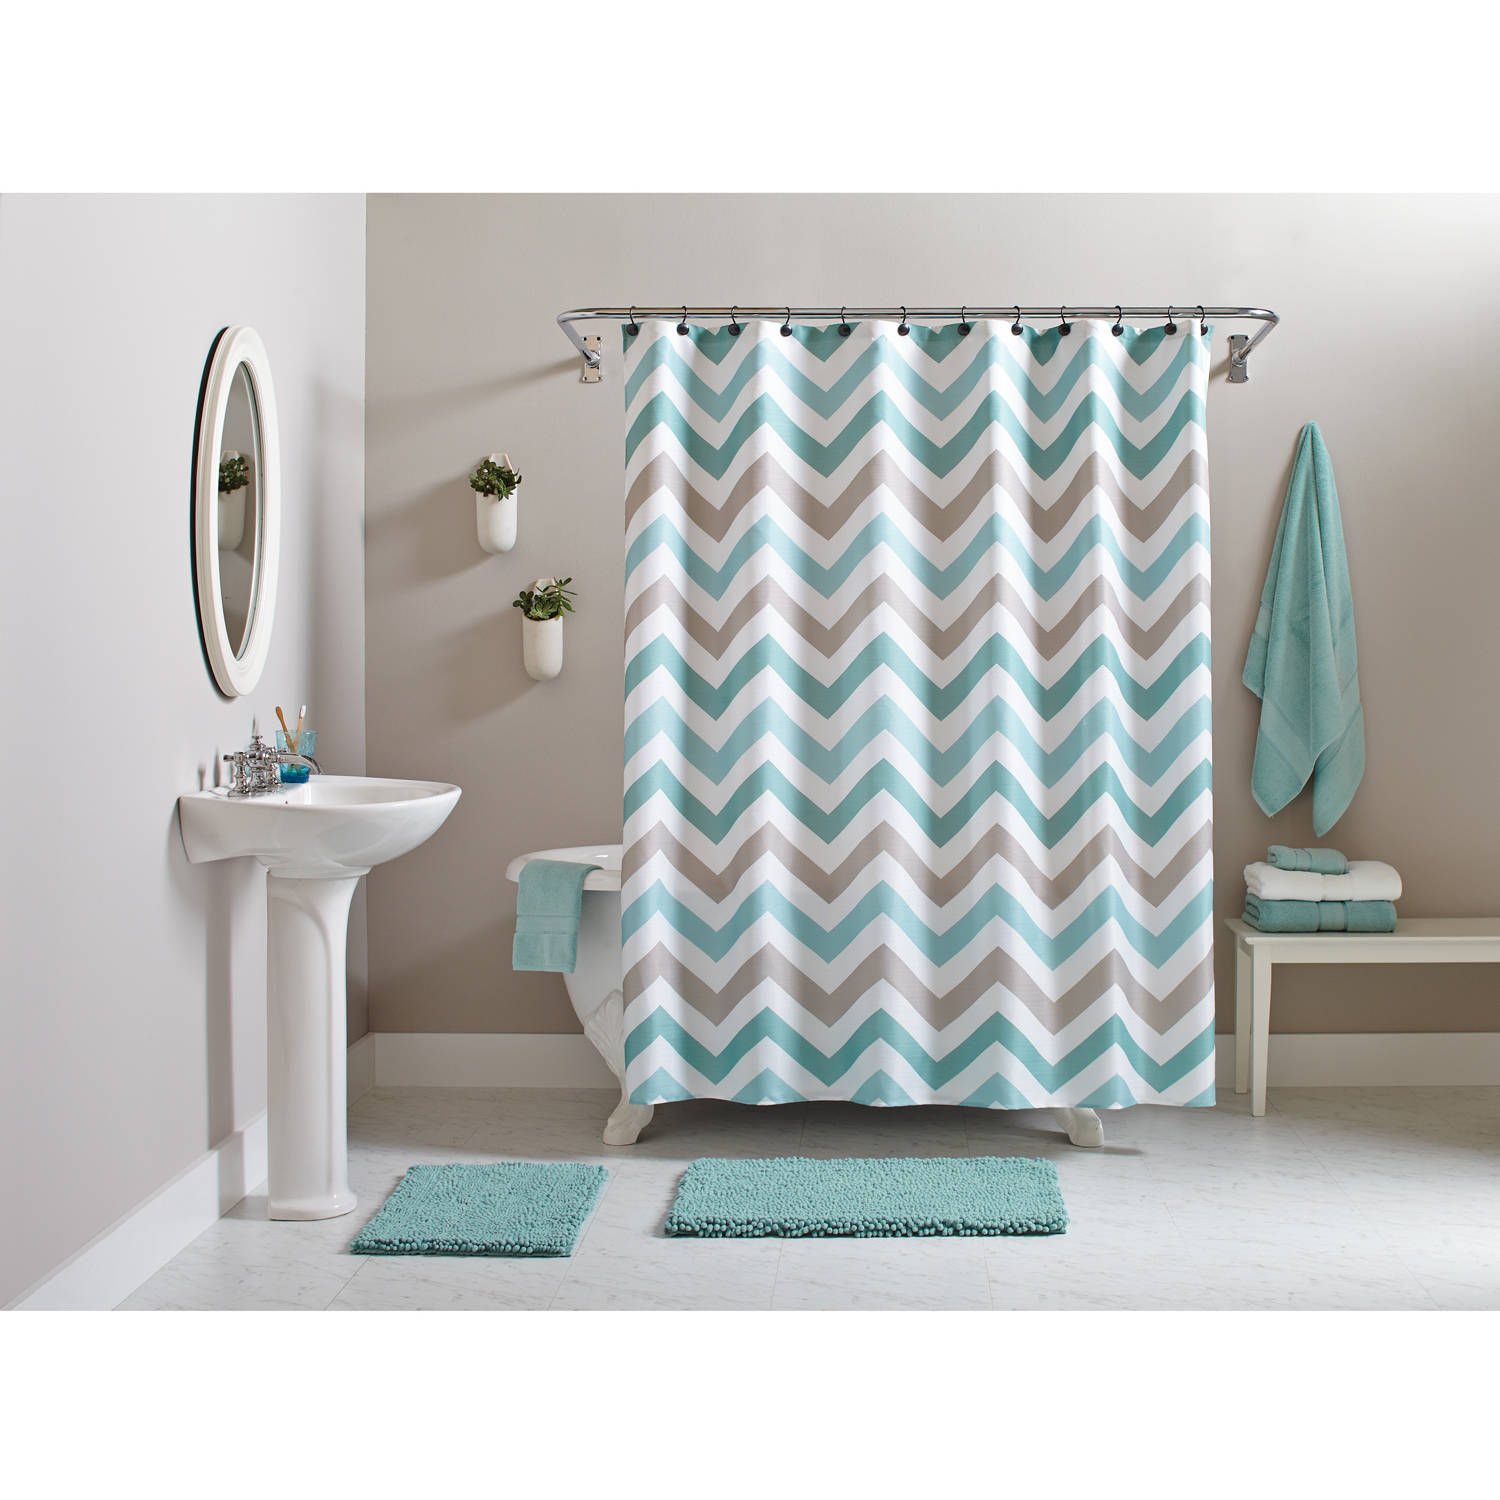 Charming Better Homes And Gardens Chevron 15 Piece Bath Set, Teal/Brown